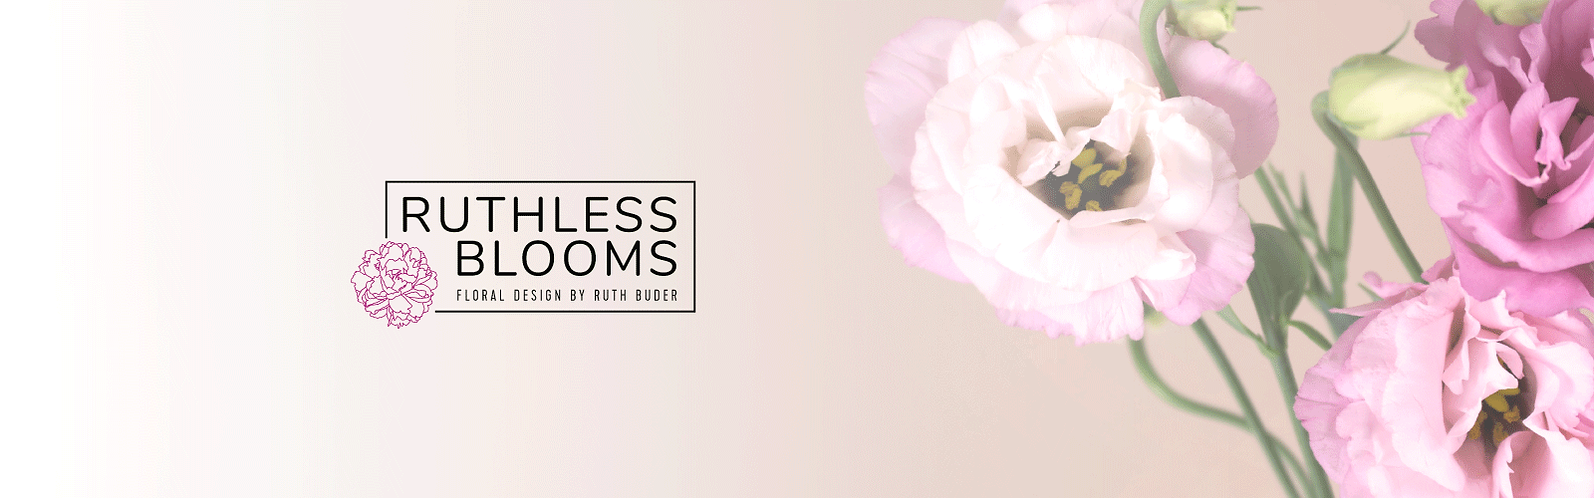 ruthless blooms brand design